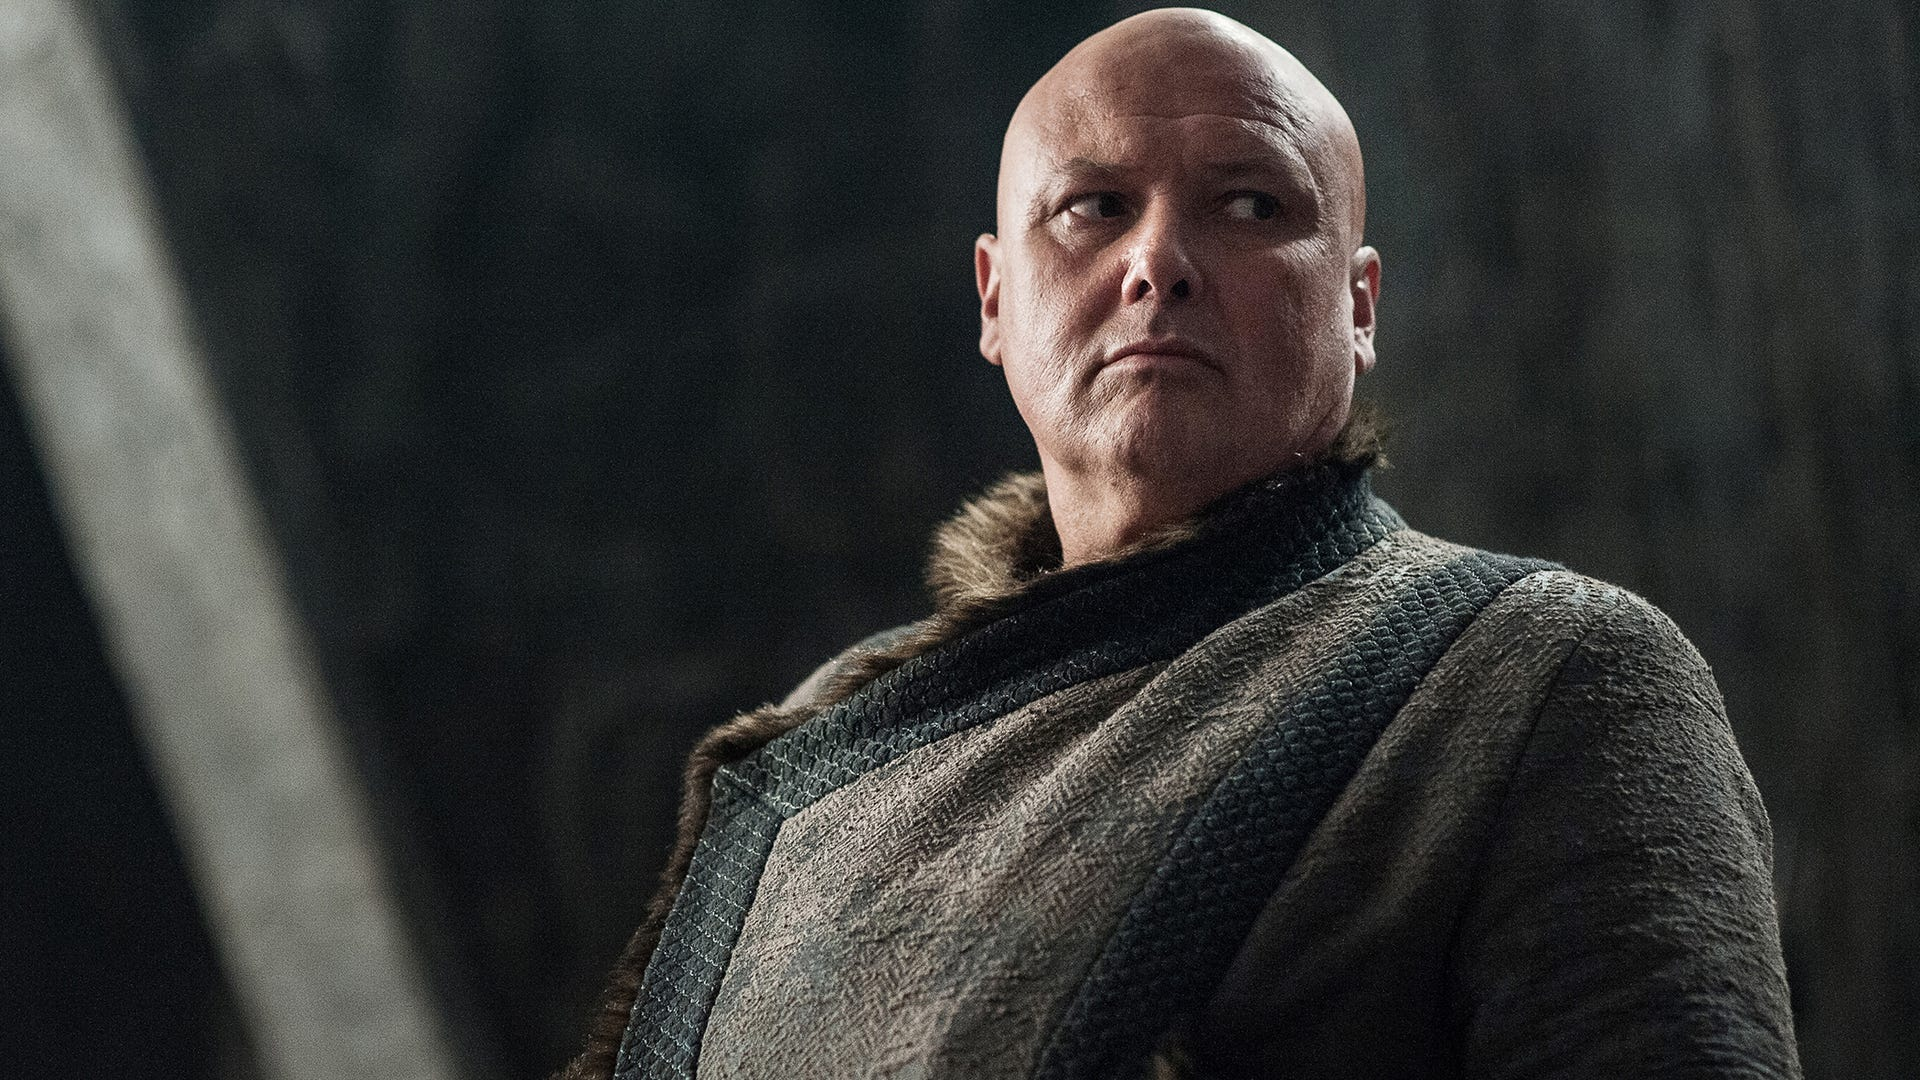 Conleth Hill, Game of Thrones